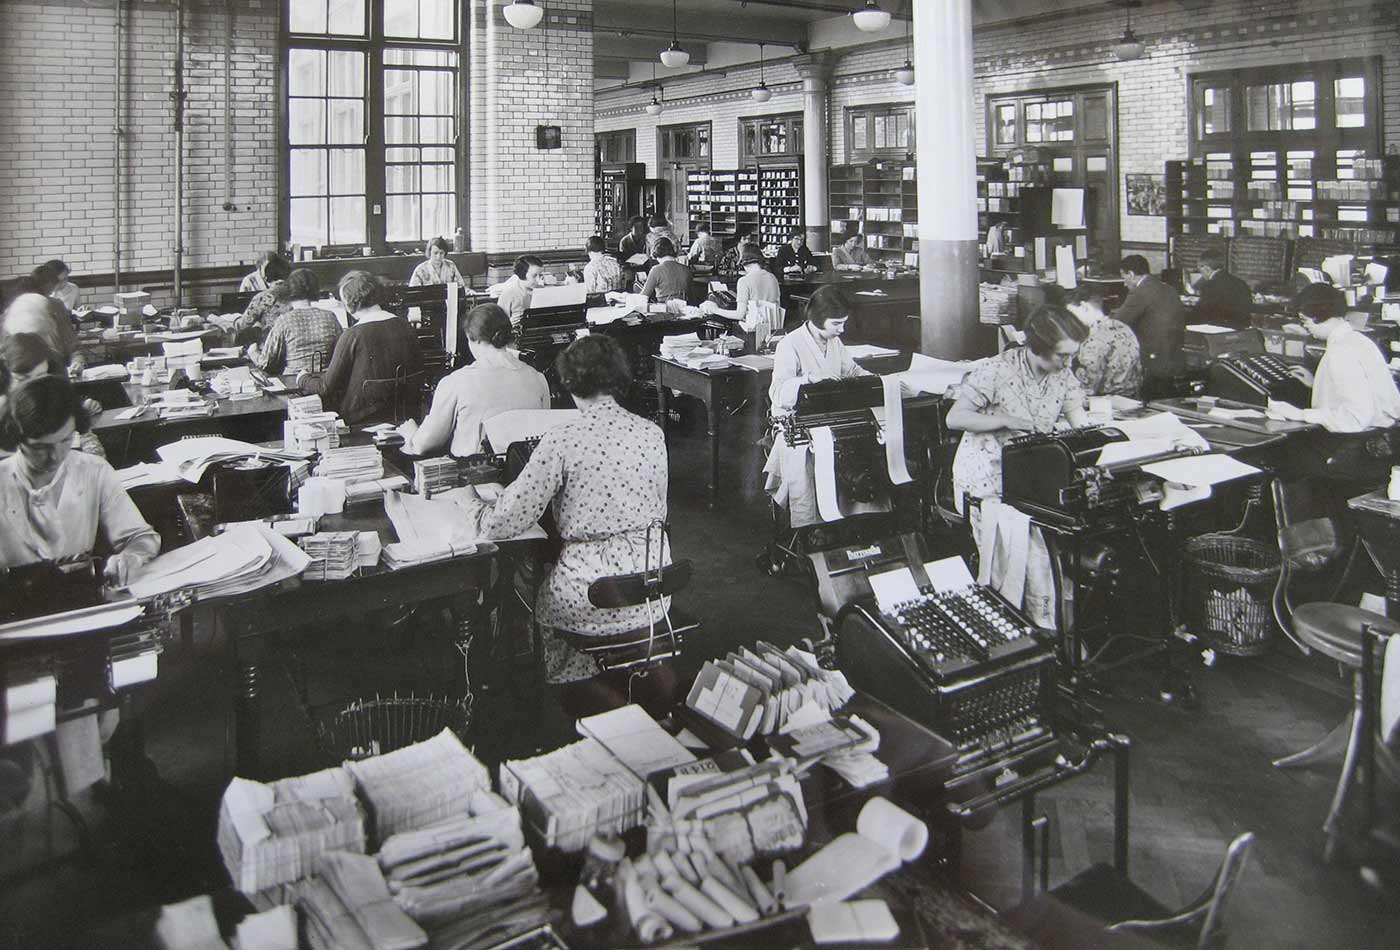 Blythe House preparing totals for daily balance, 1930s